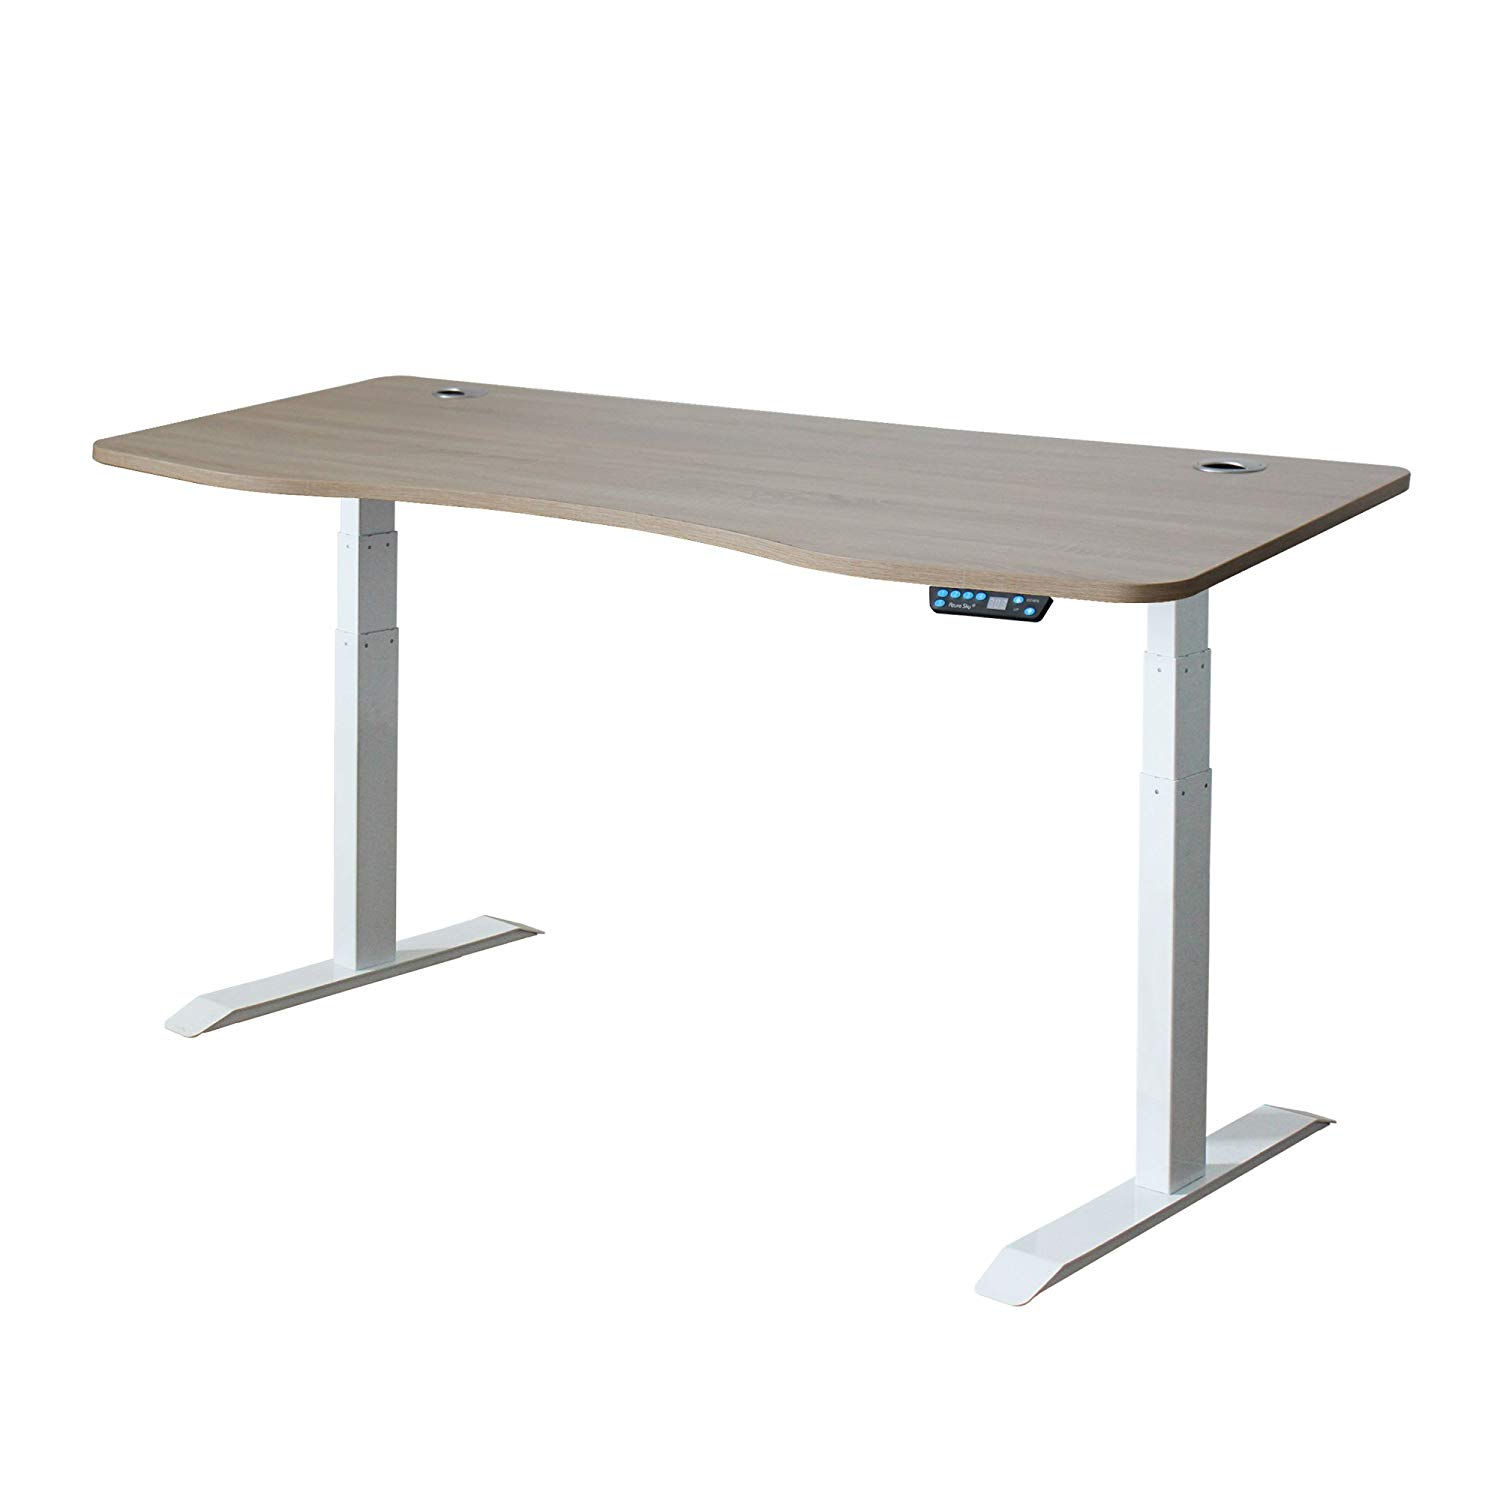 Azure Sky A3-63 Ergonomic 63-in 3 Memory Buttons LED Electric Automatic Height Adjustable Sit to Stand Curved Work Office Desk with White Legs